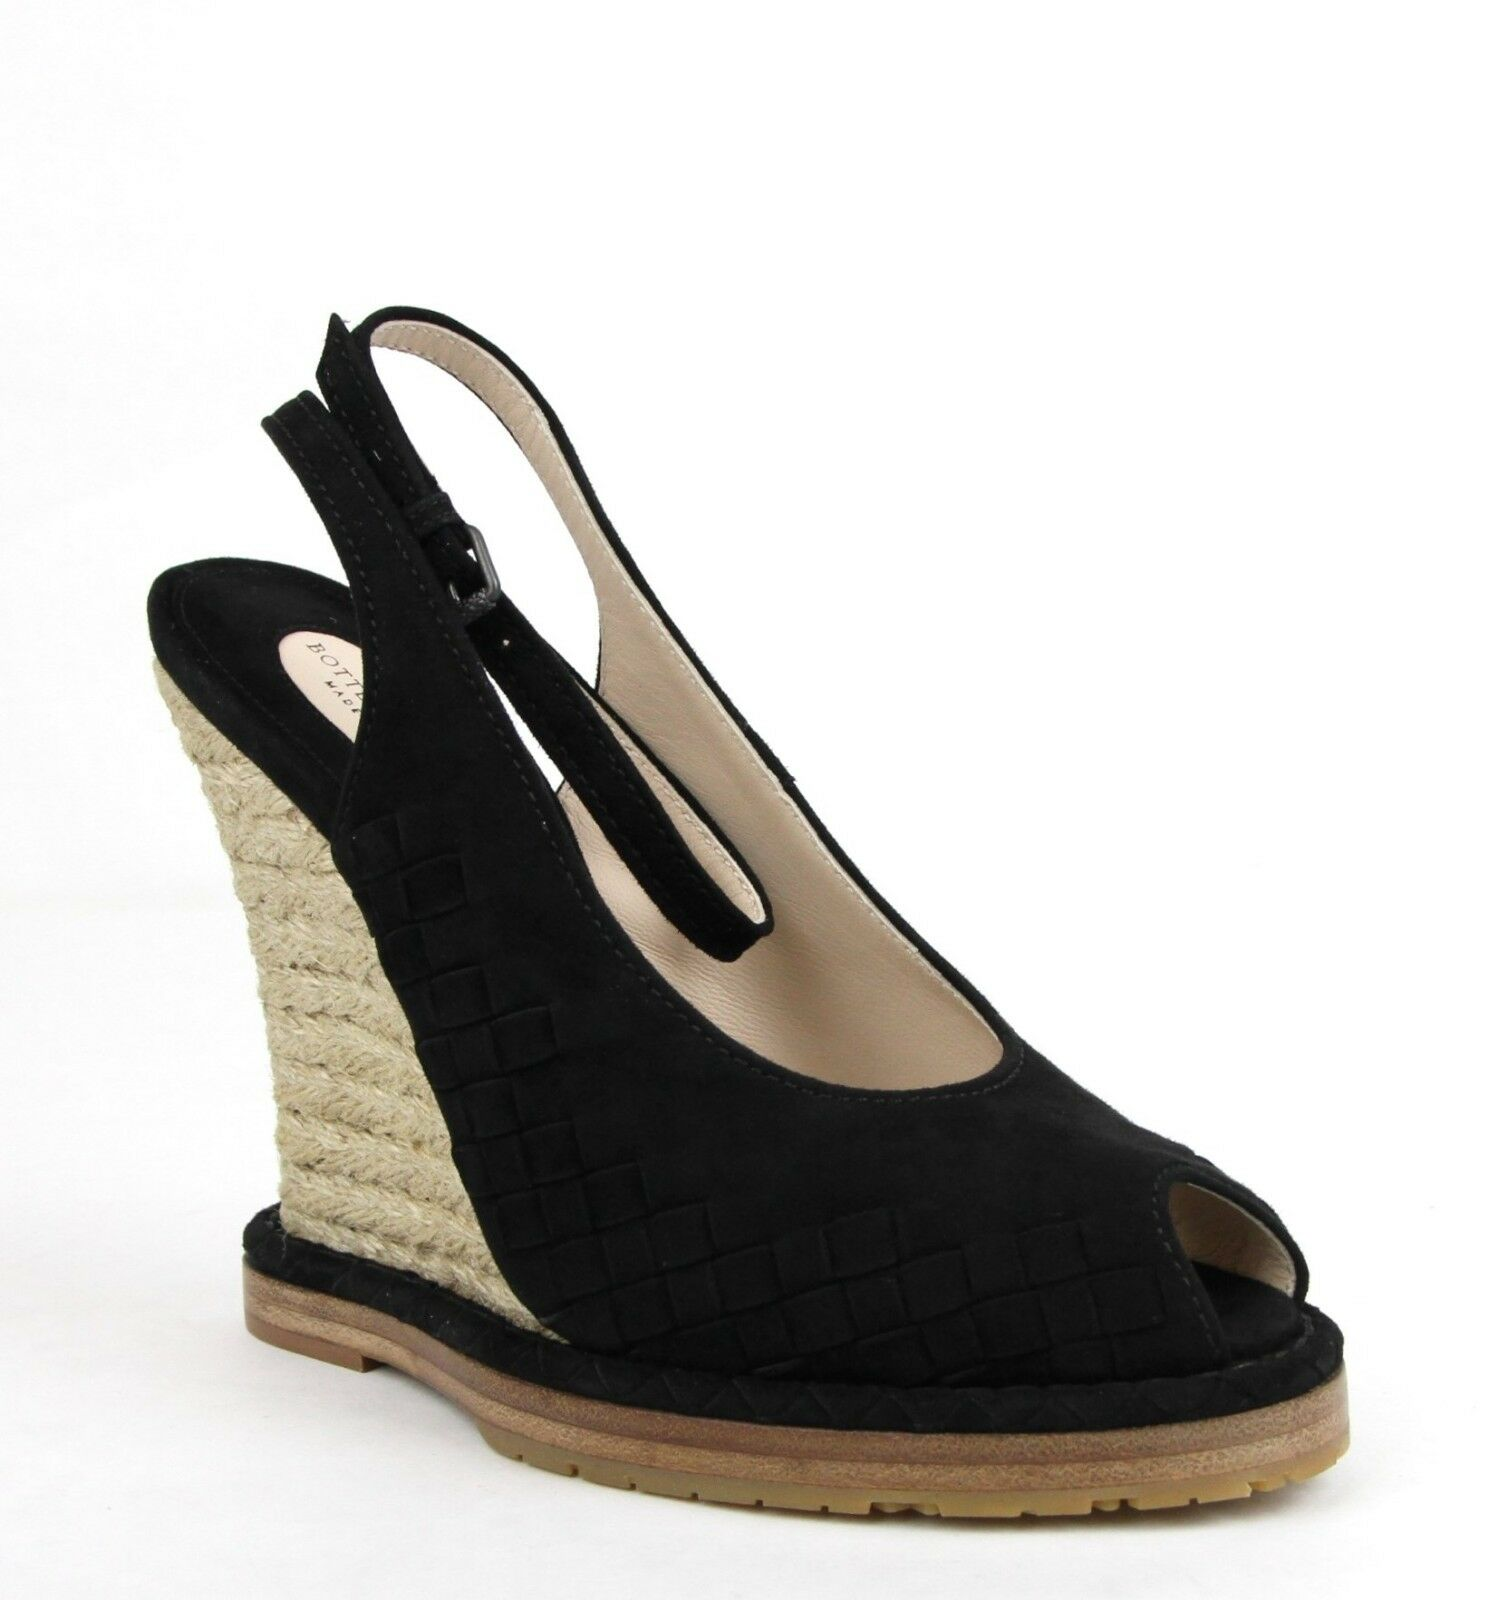 990 Bottega Veneta Womens Black Suede Woven Intrecciato Straw Wedge 465179 1000